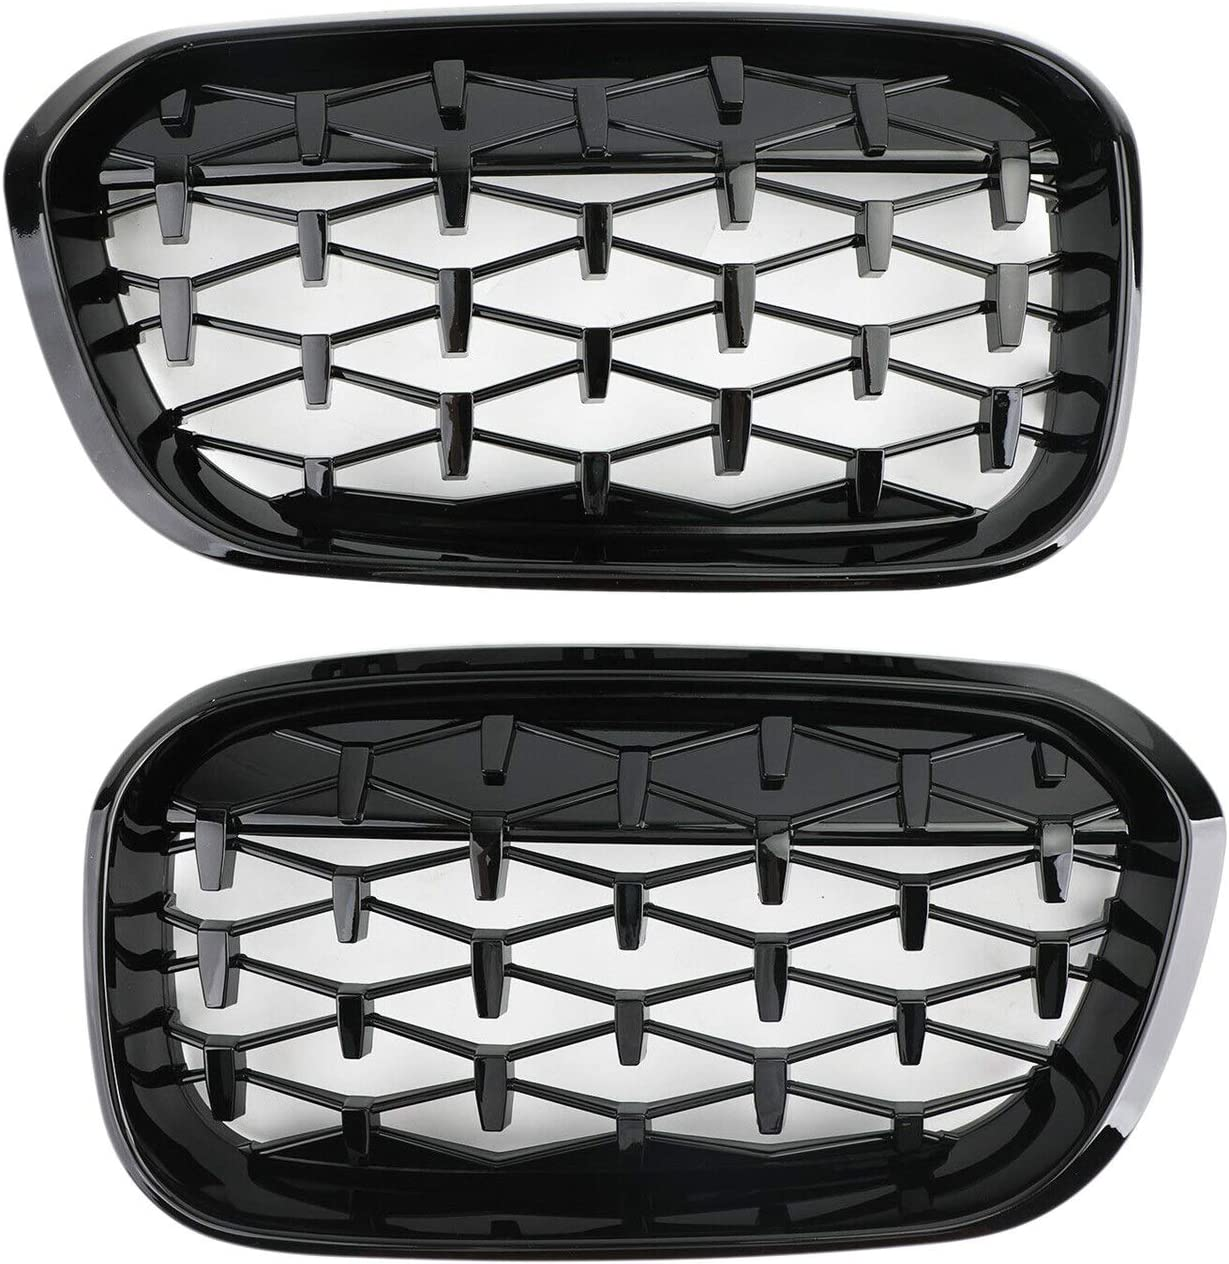 Nrpfell Front Kidney Grill Front Hood Diamond Grille Meteor Grill For 1 Series F20 F21 LCI 2015-2017 Black